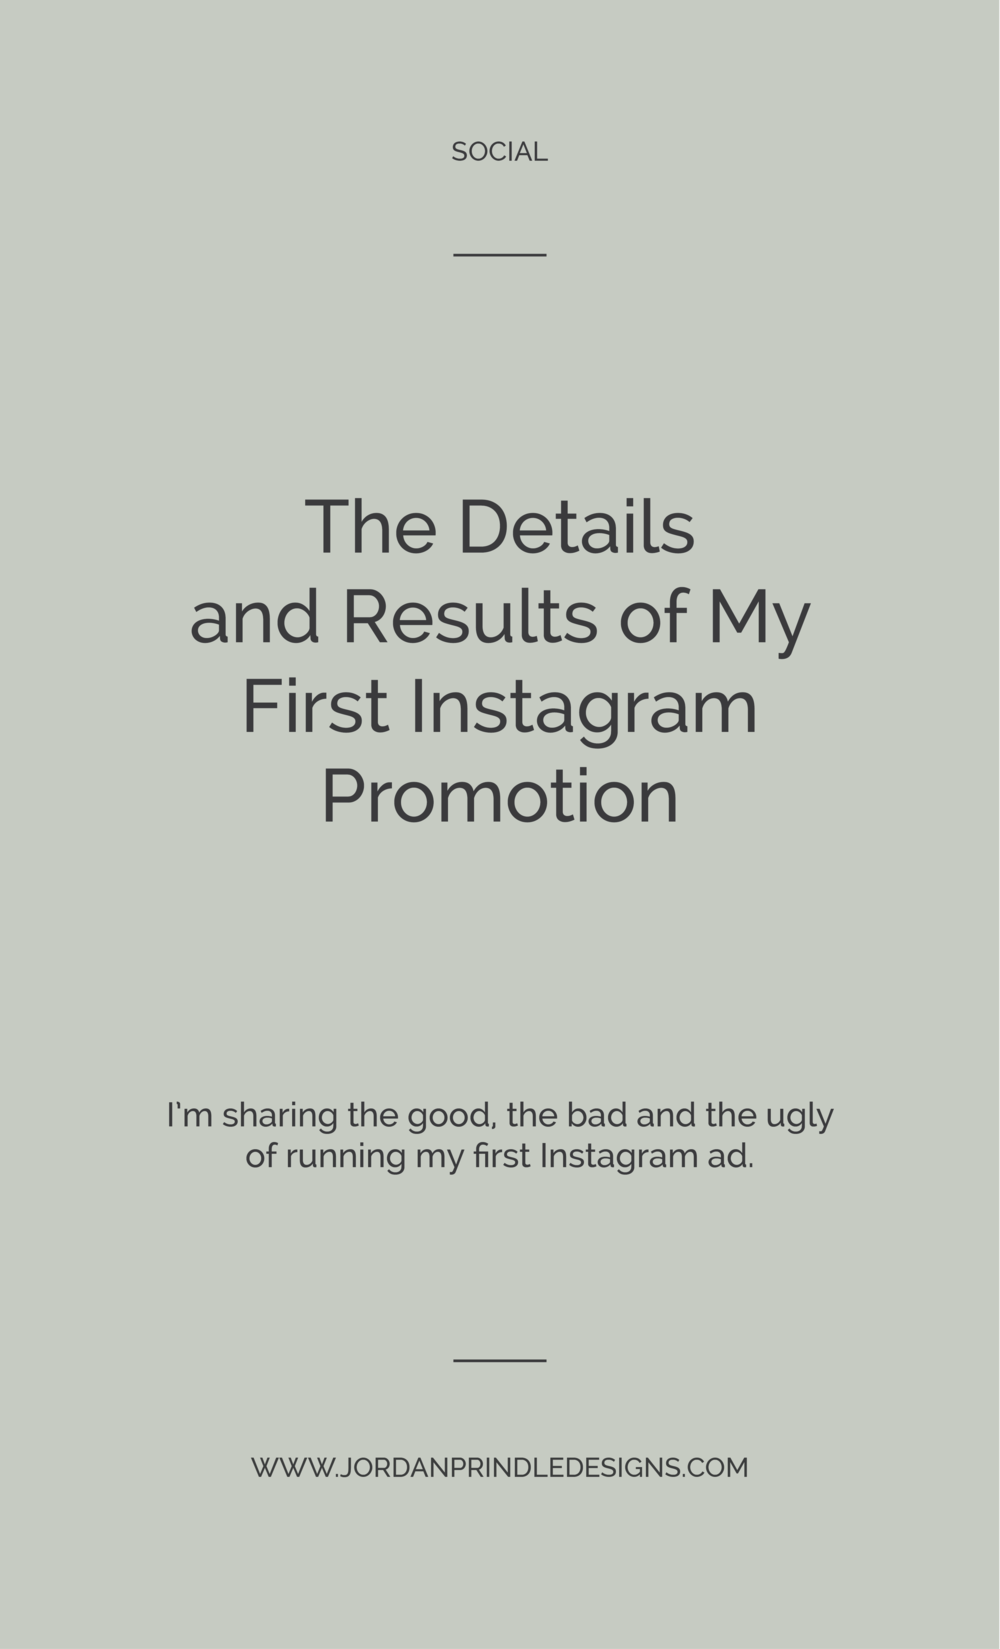 The Details and Results of My First Instagram Promotion | I'm sharing all the background information and results of my first #instagram promotion. Read the full post at www.jordanprindledesigns.com